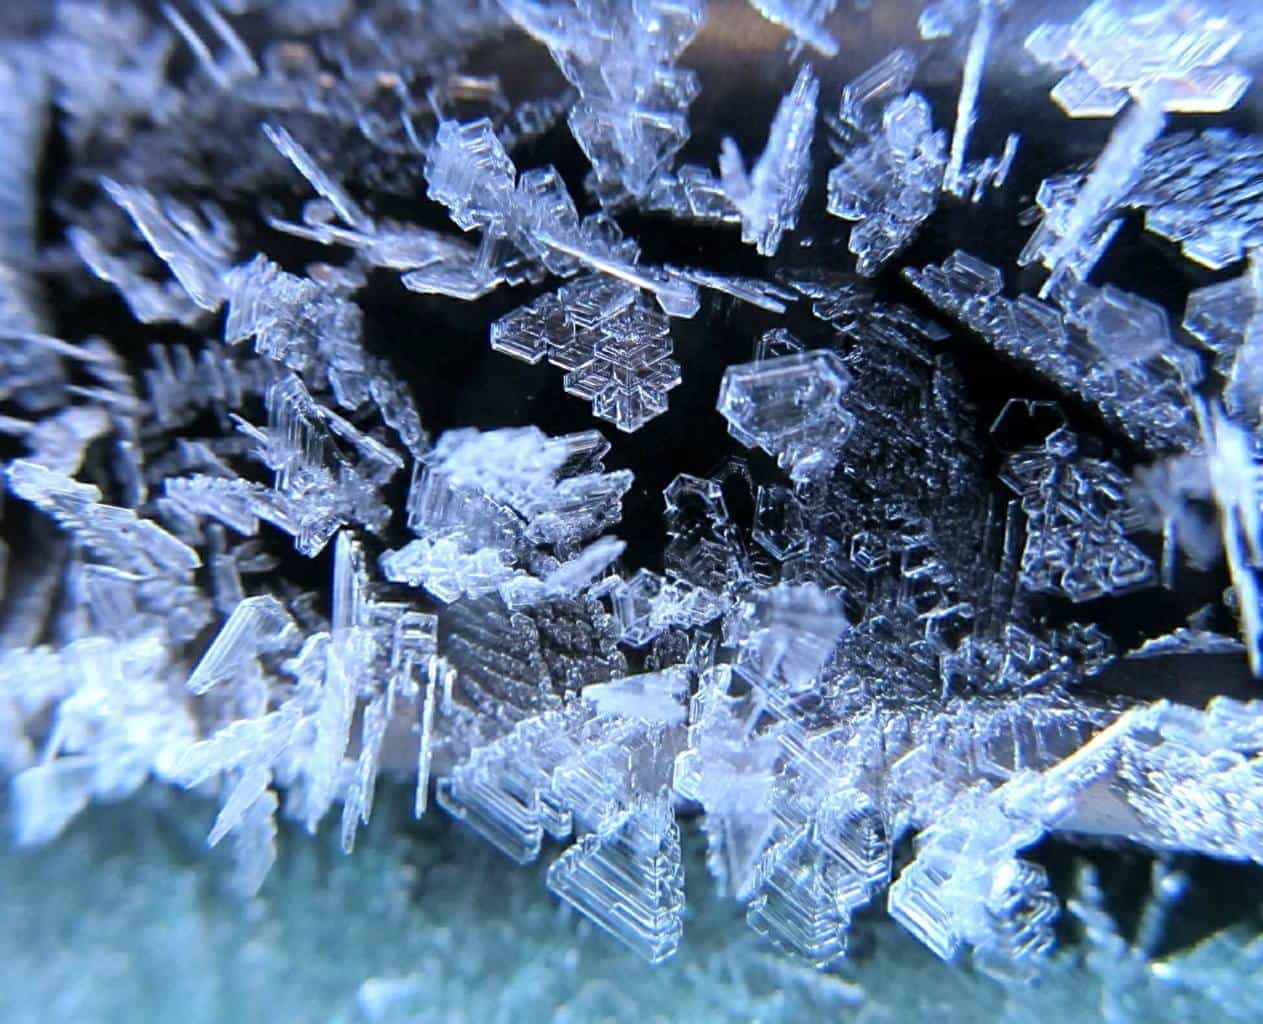 Frost crystals this morning in Eau Claire, WI